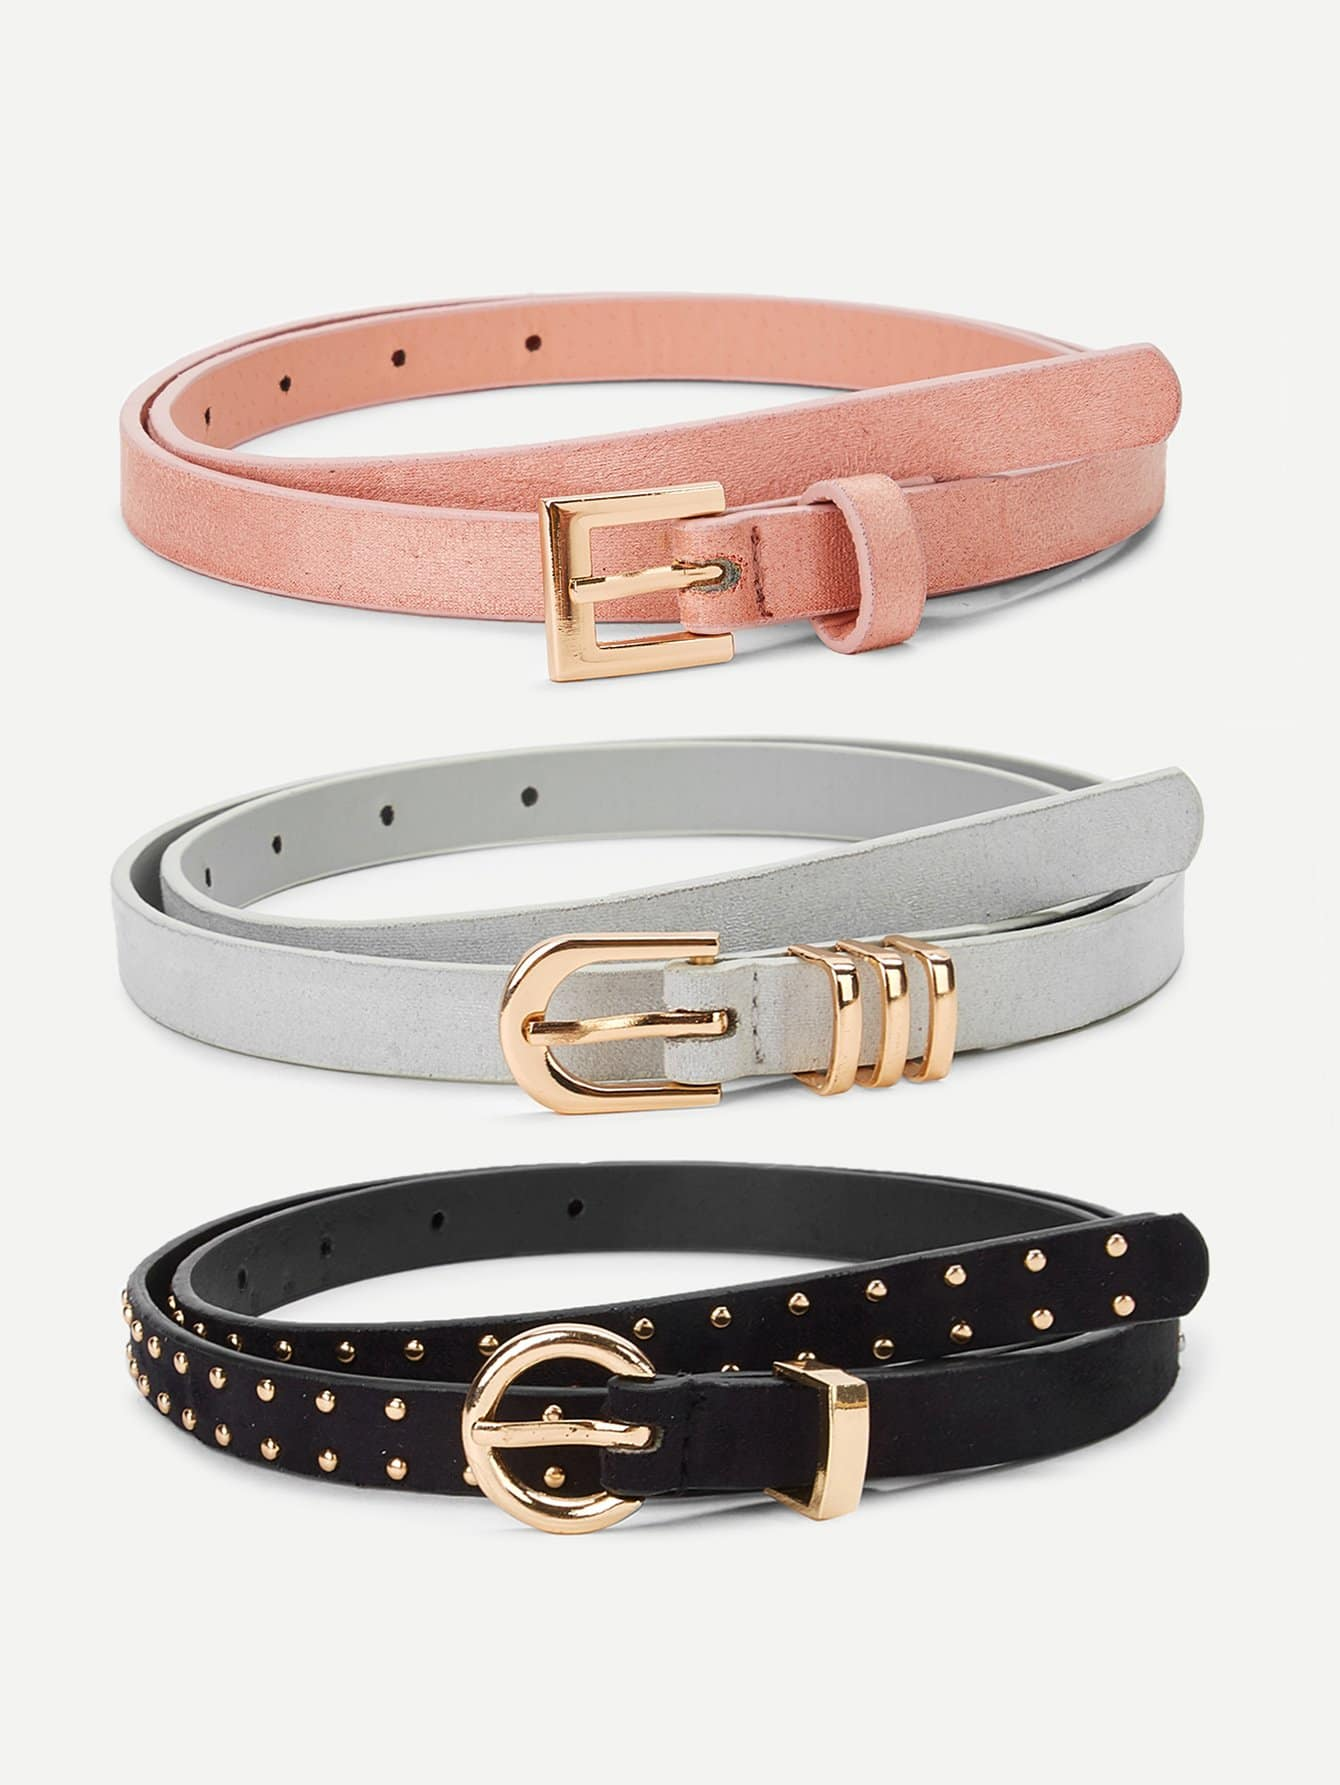 Pearl Decorated Metal Buckle Belt 3 Pcs - FLJ CORPORATIONS